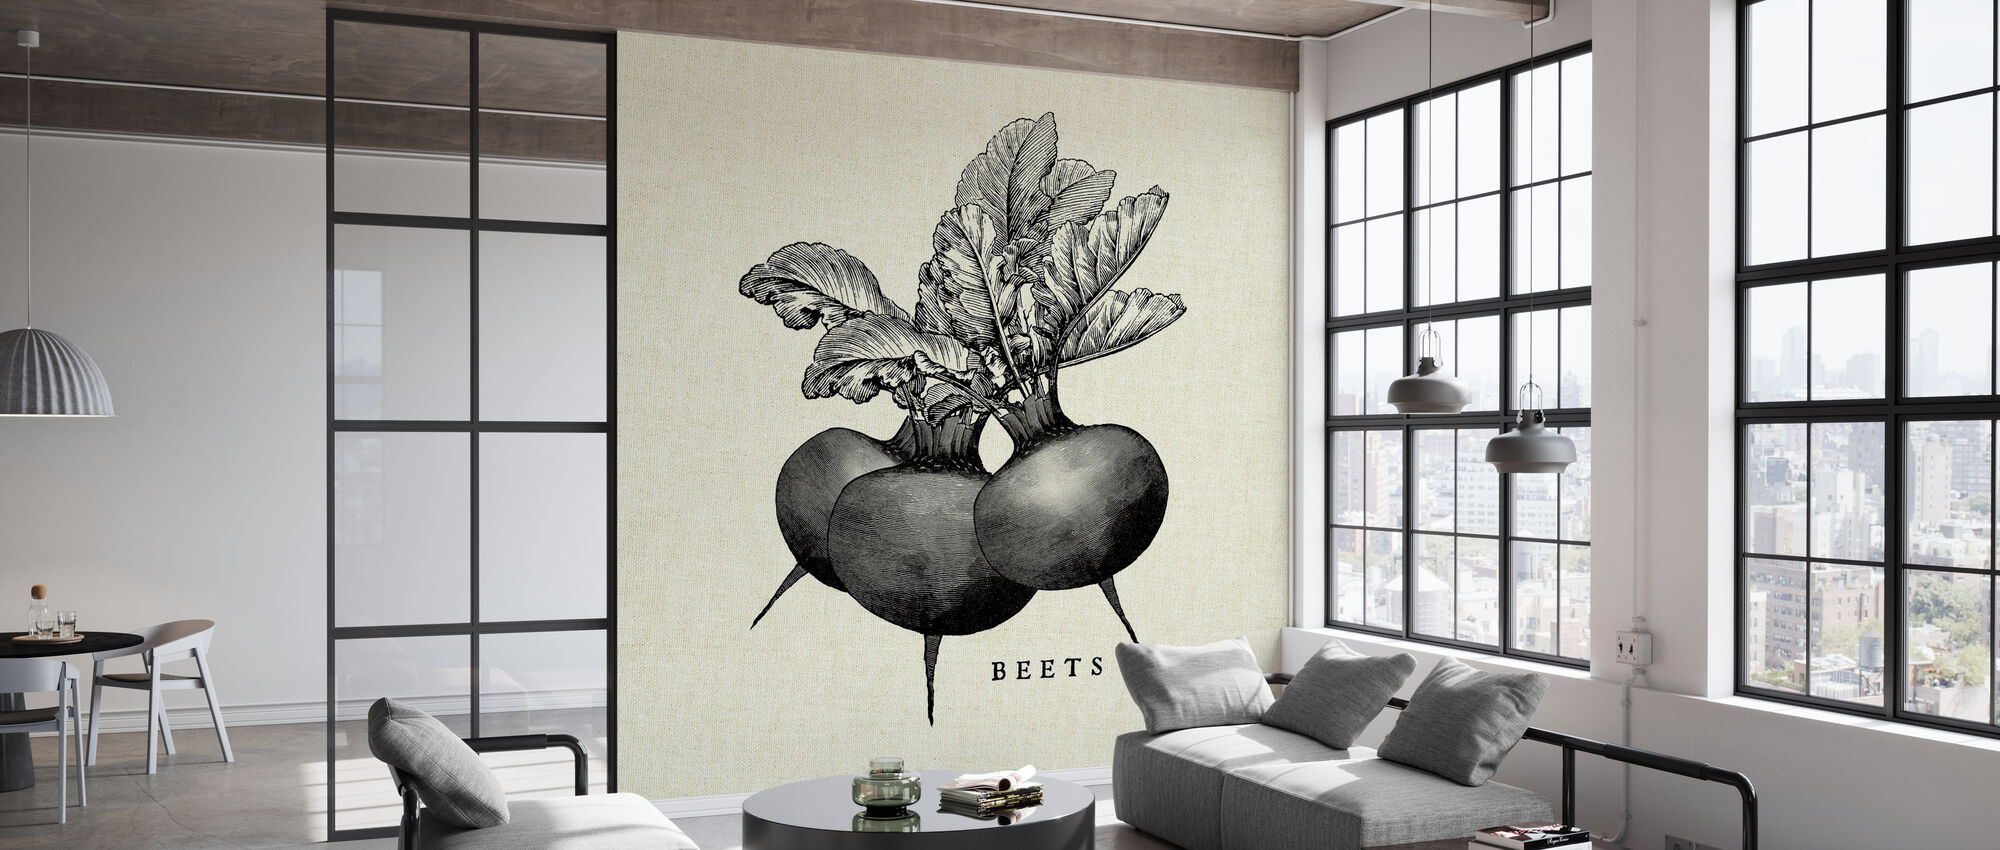 Kitchen Illustration - Beets - Wallpaper - Office